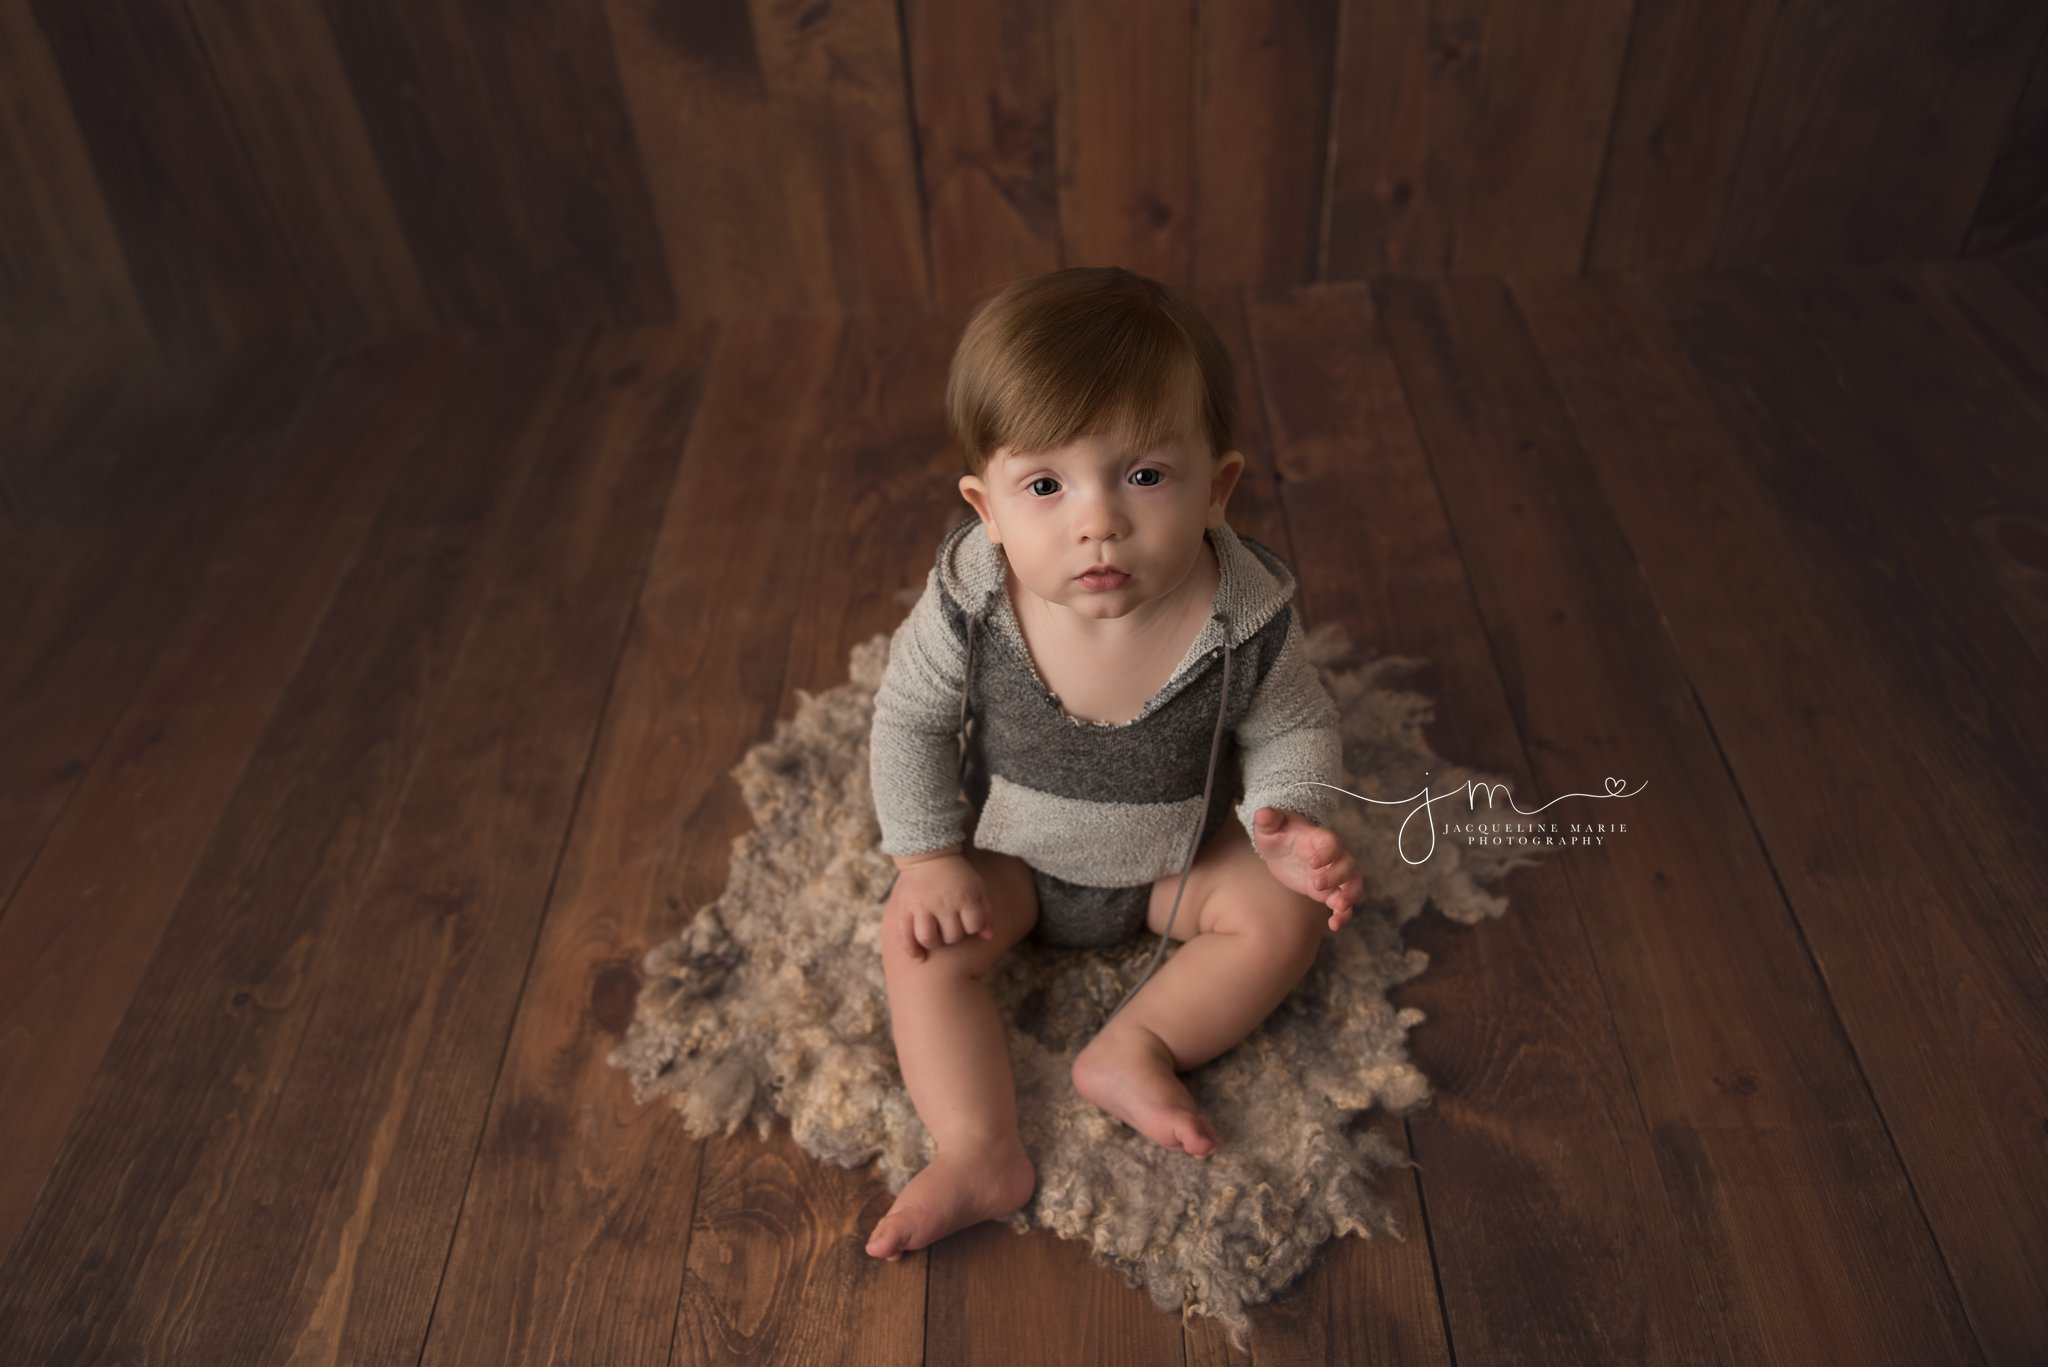 columbus ohio baby photographer features baby boy wearing gray hooded romper for photography session